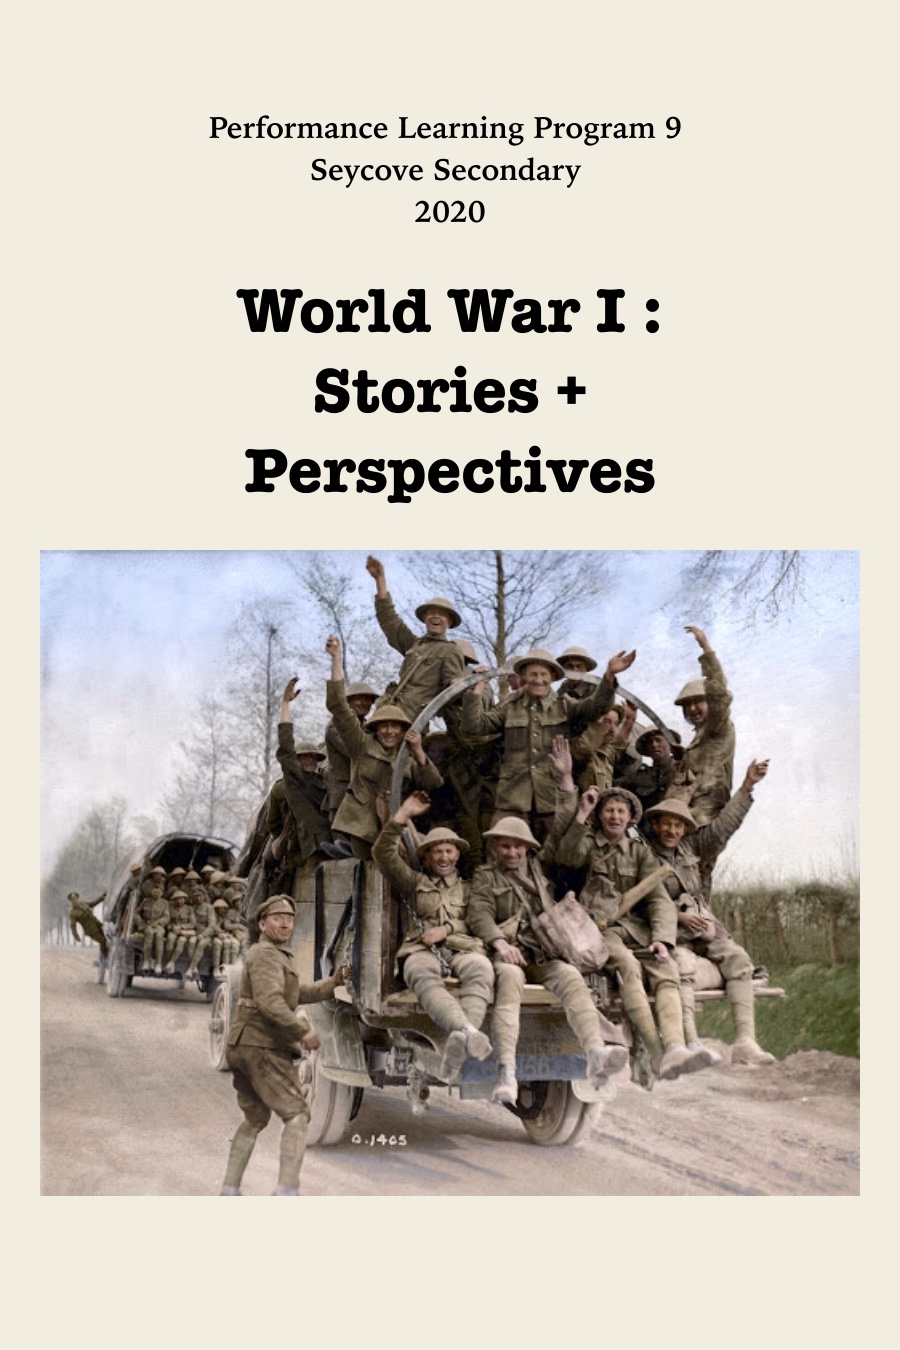 WWI: Stories and Perspectives